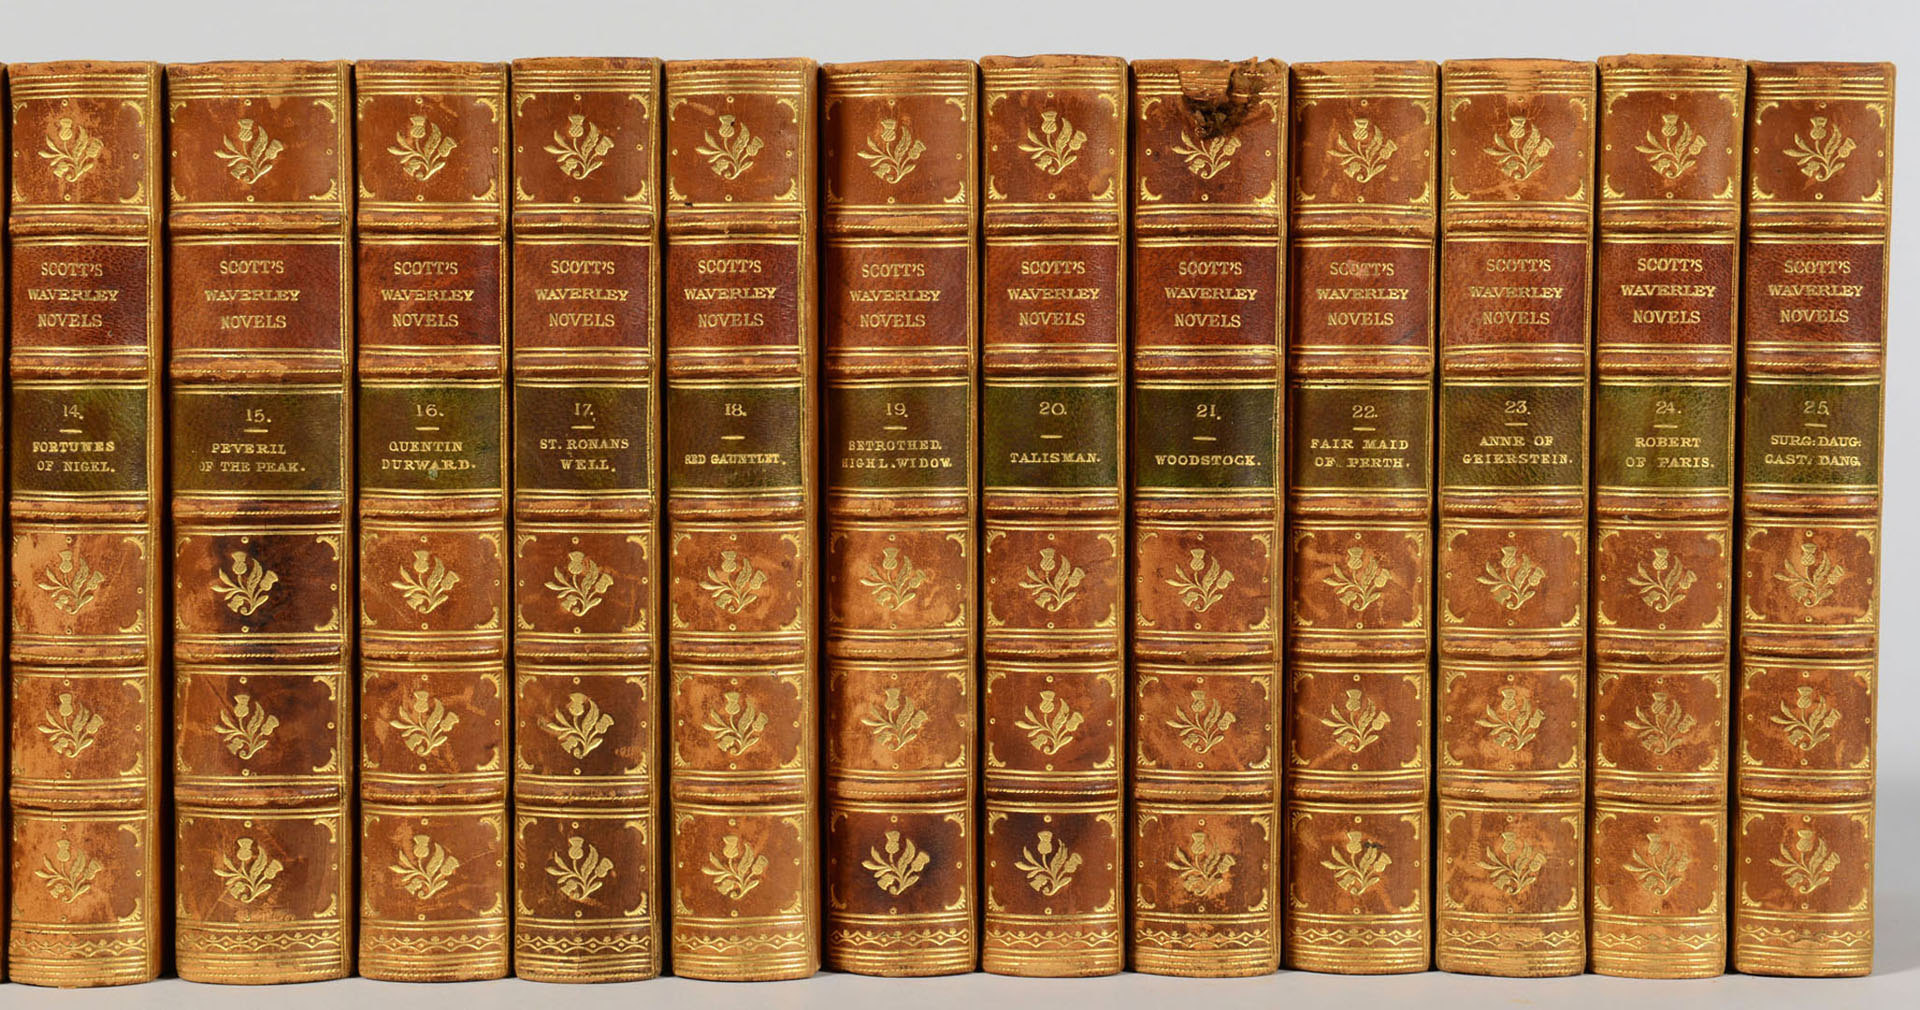 Lot 607: The Waverly Novels by Sir Walter Scott, 25 Vols.